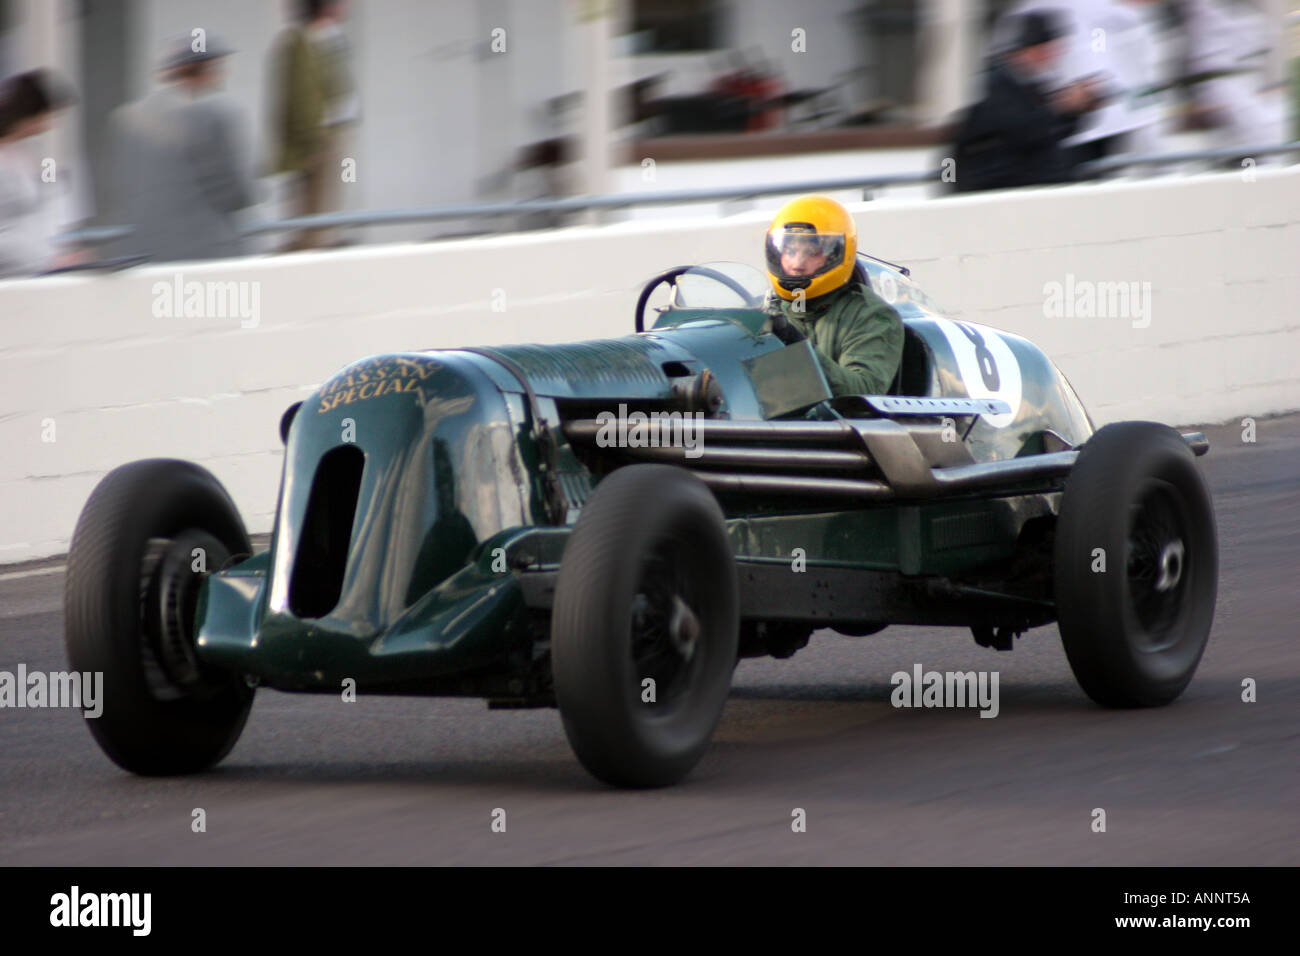 Vintage Racing Stock Photos & Vintage Racing Stock Images - Alamy